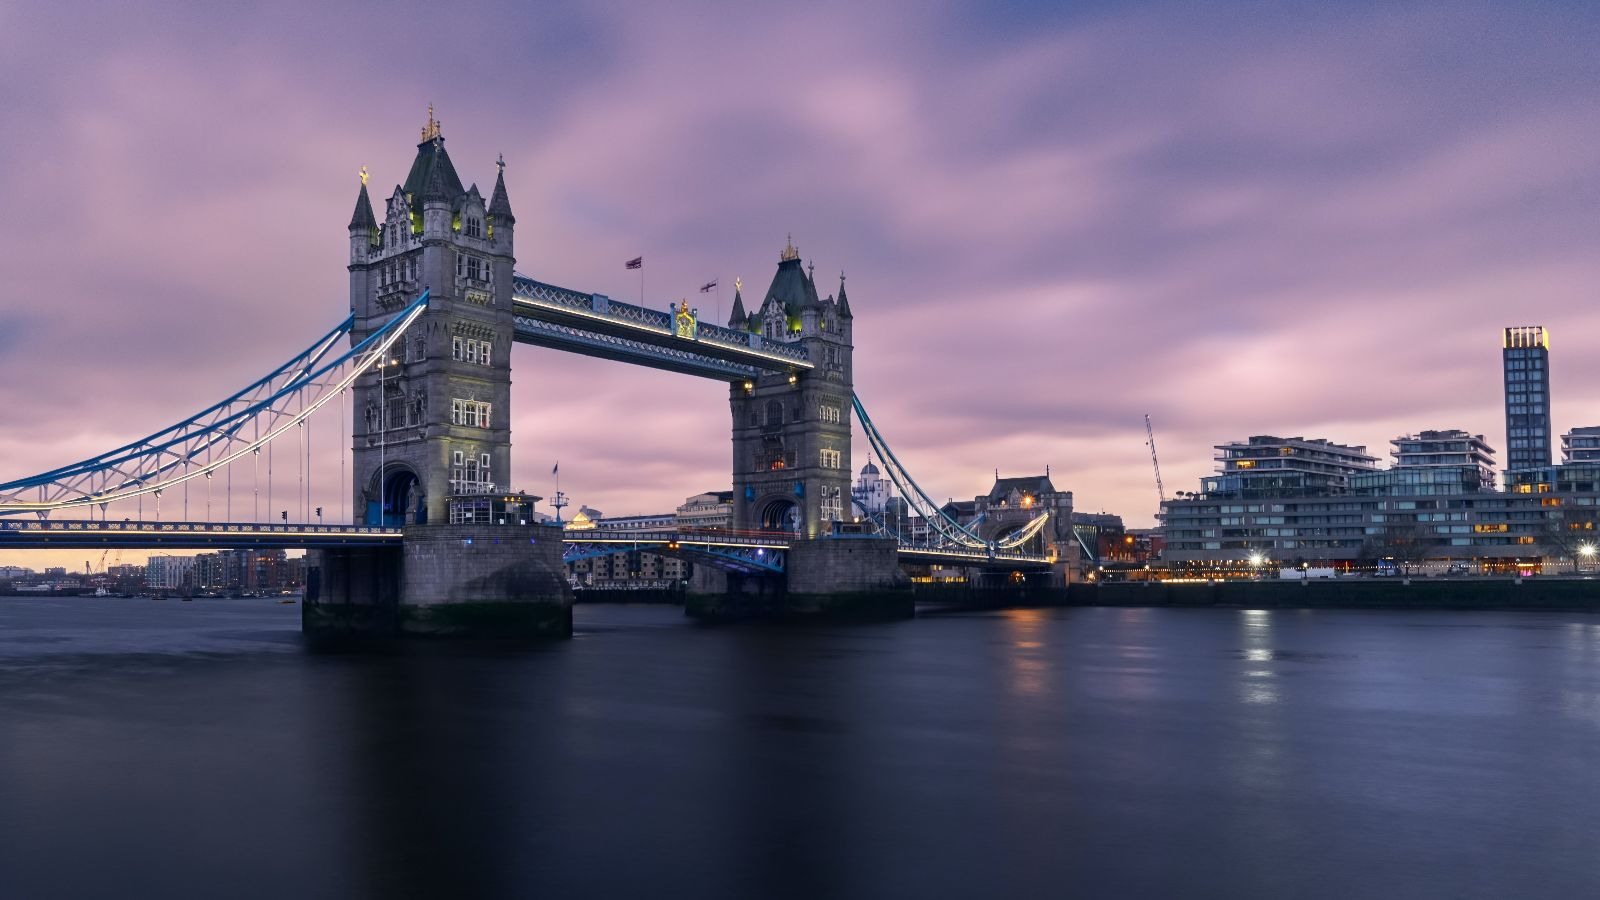 15 most Instagrammable locations in EU - London